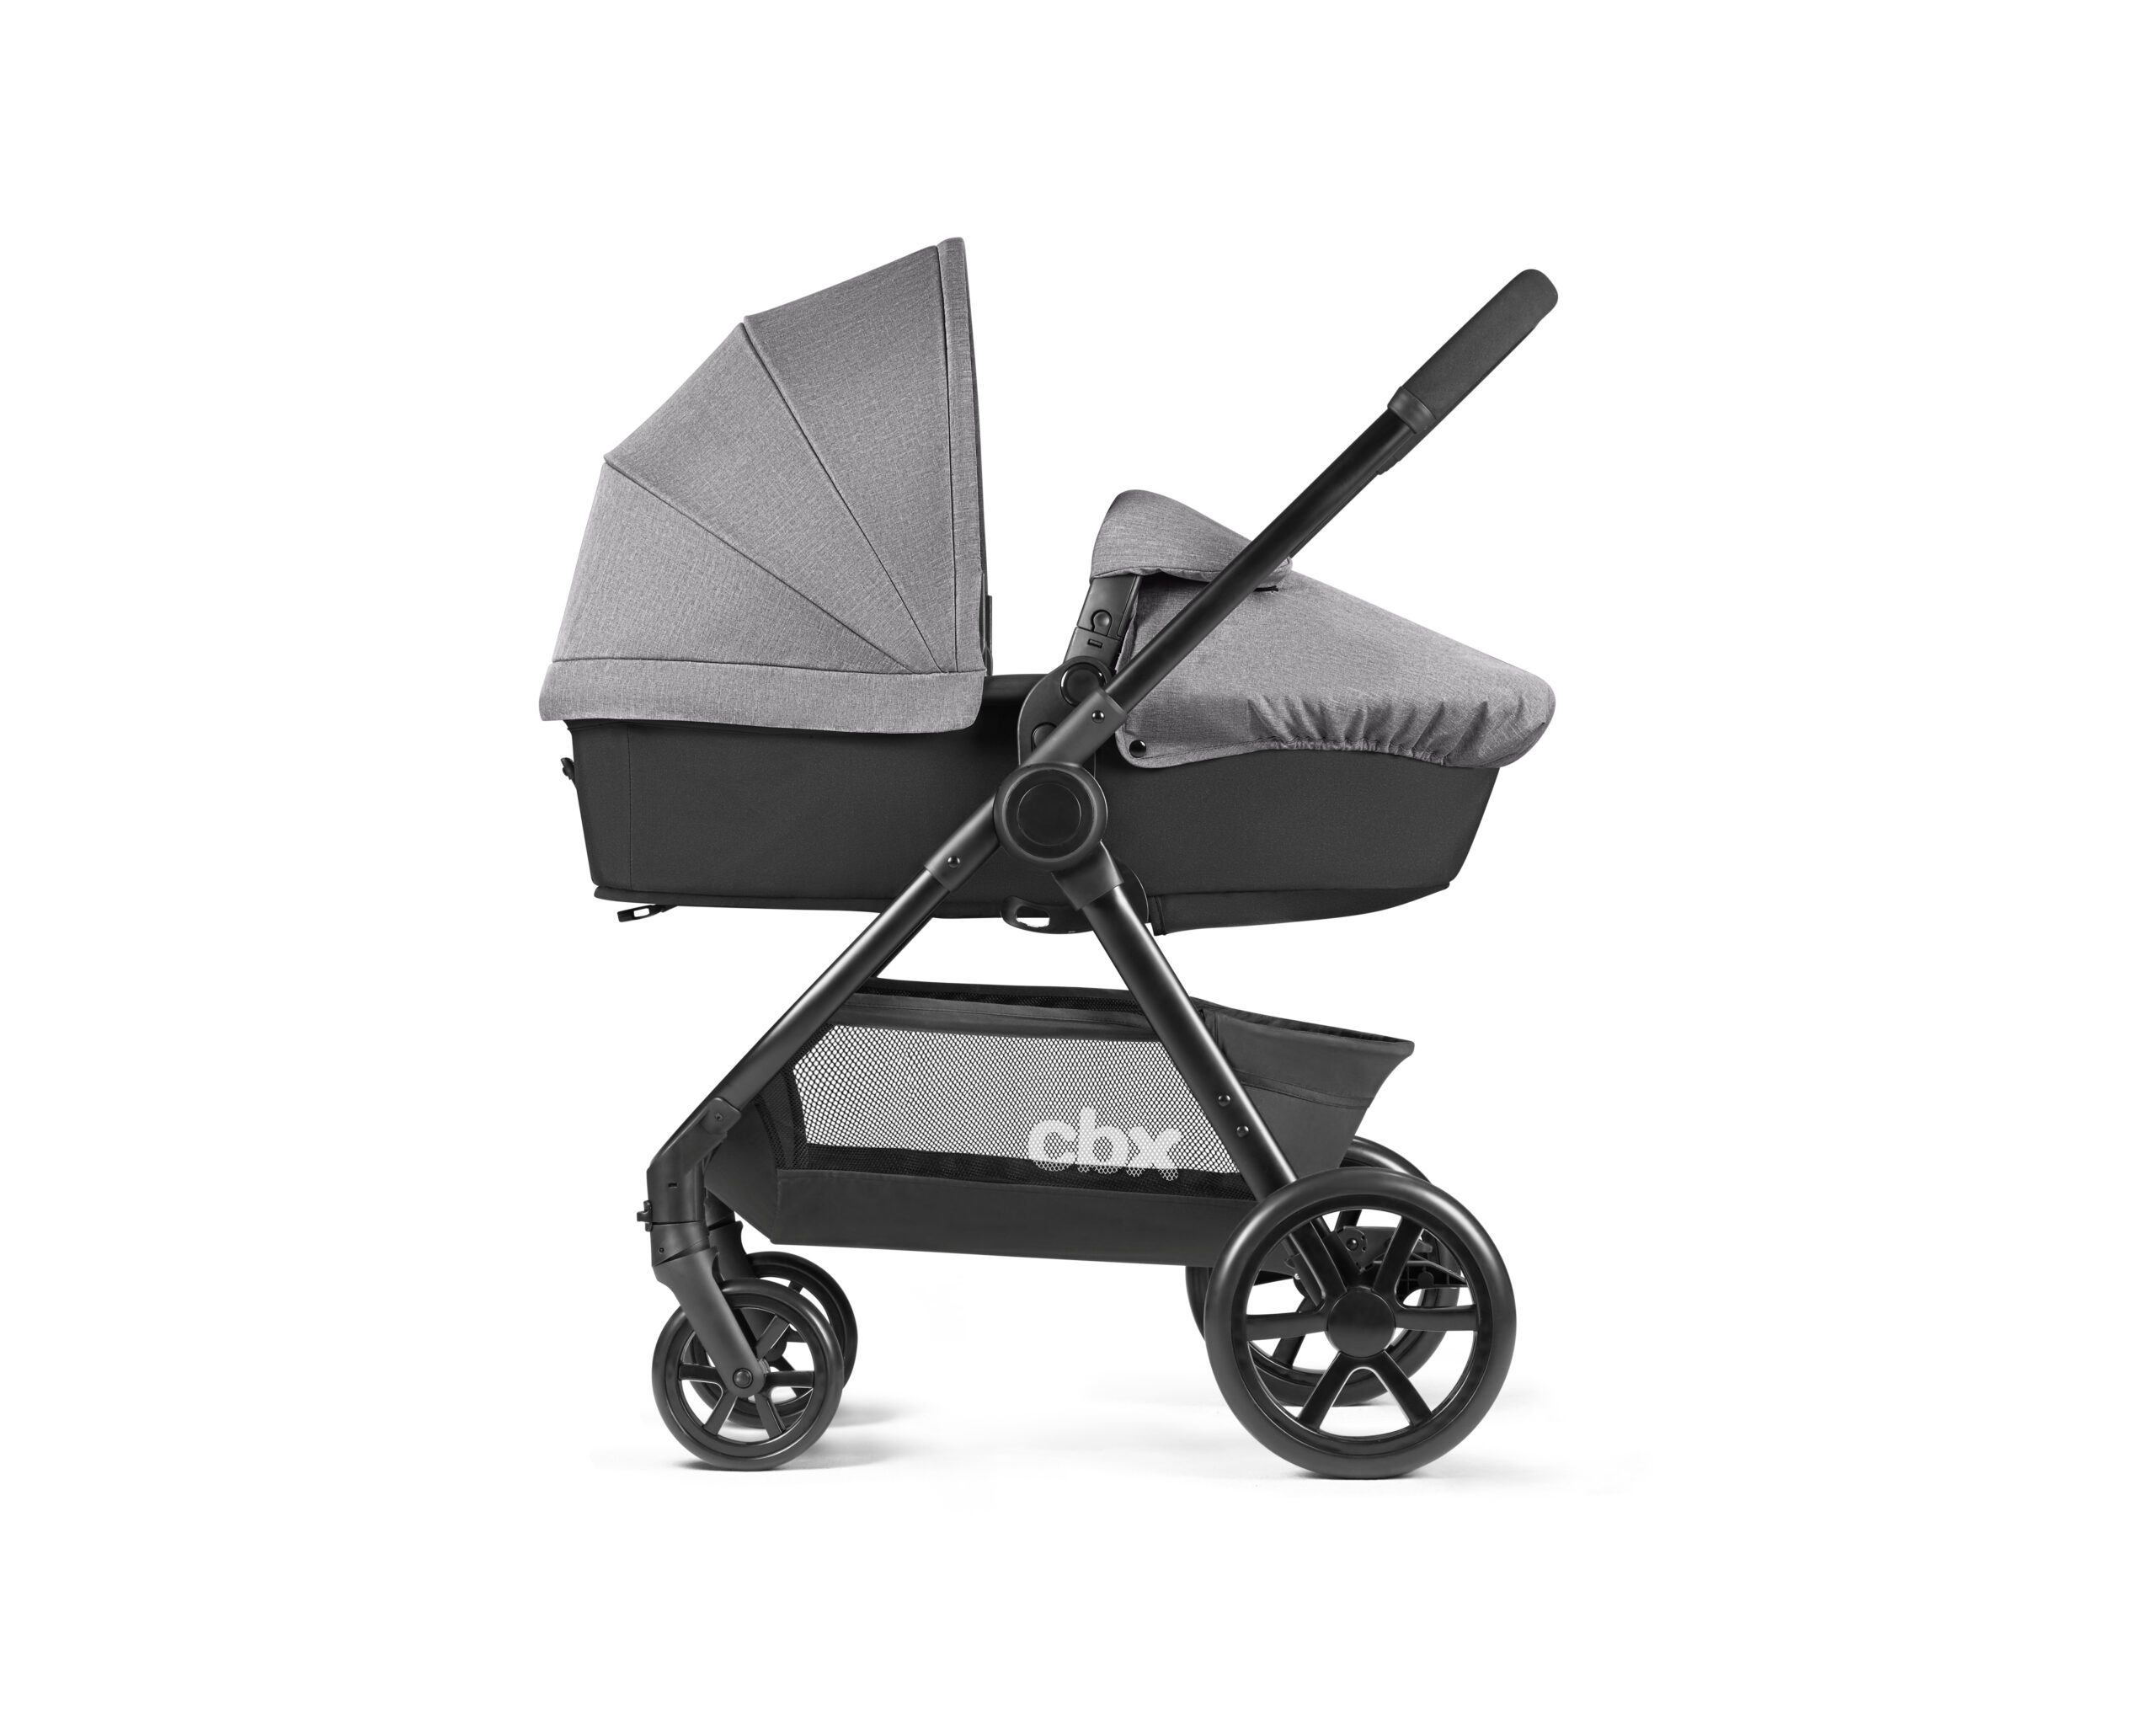 10_CBX_18_y090_ONIDA_With_Carrycot_02_DERV_HQ